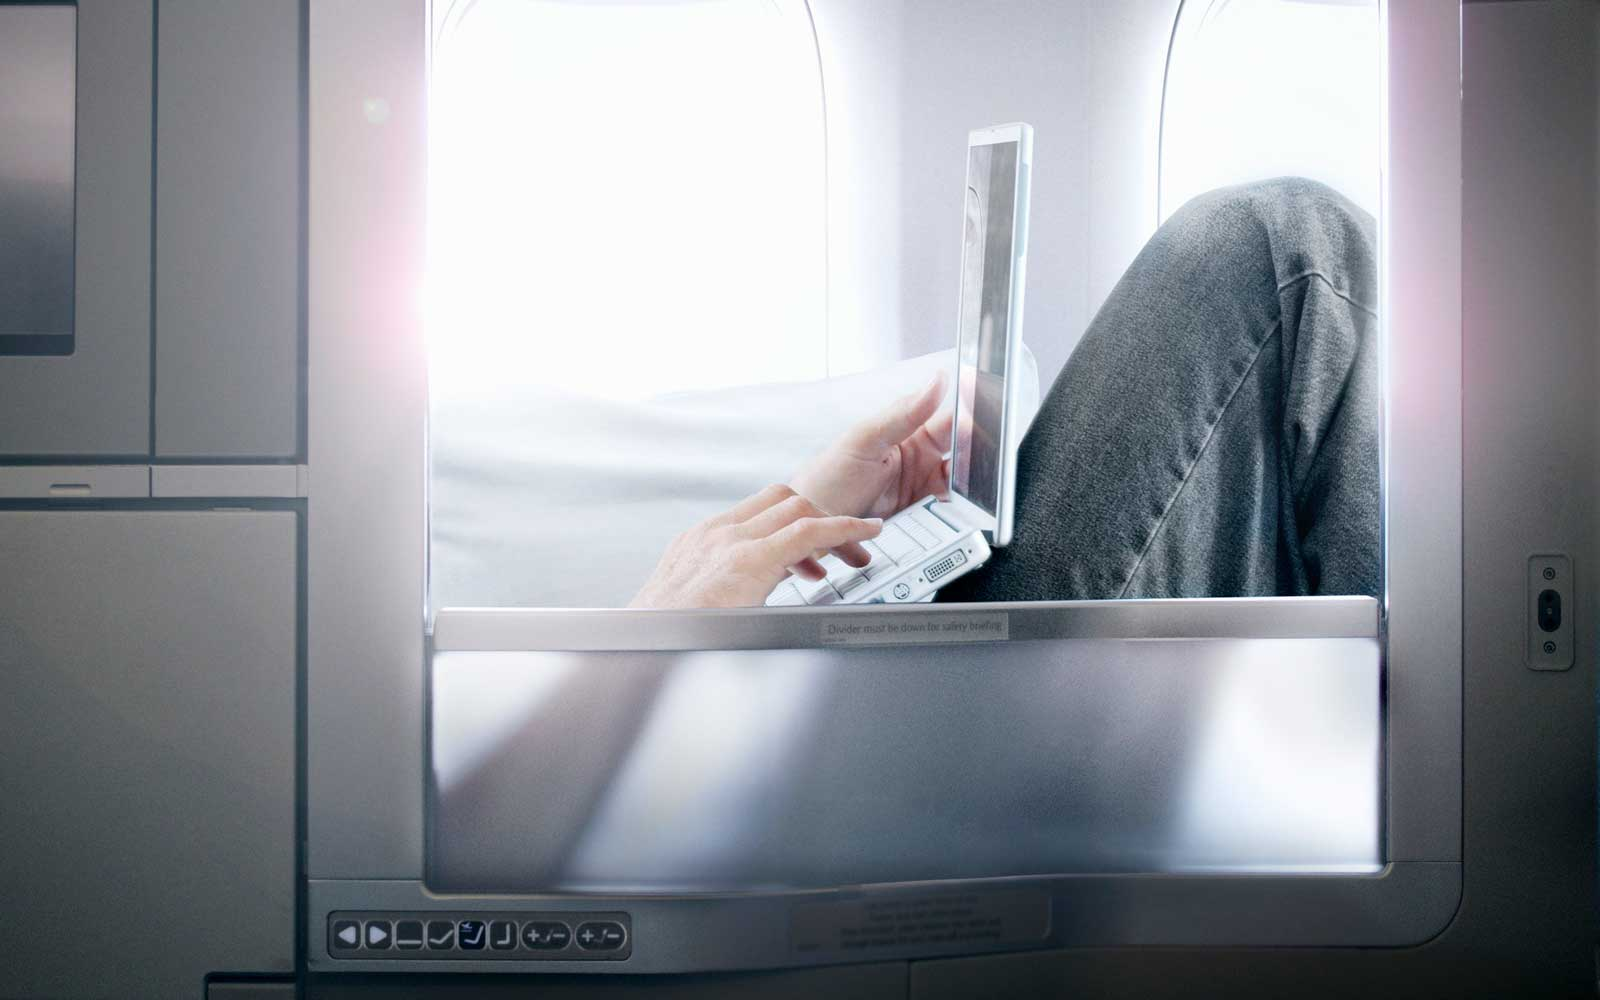 10 Easy Ways to Make Your Economy Flight Feel Like First Class